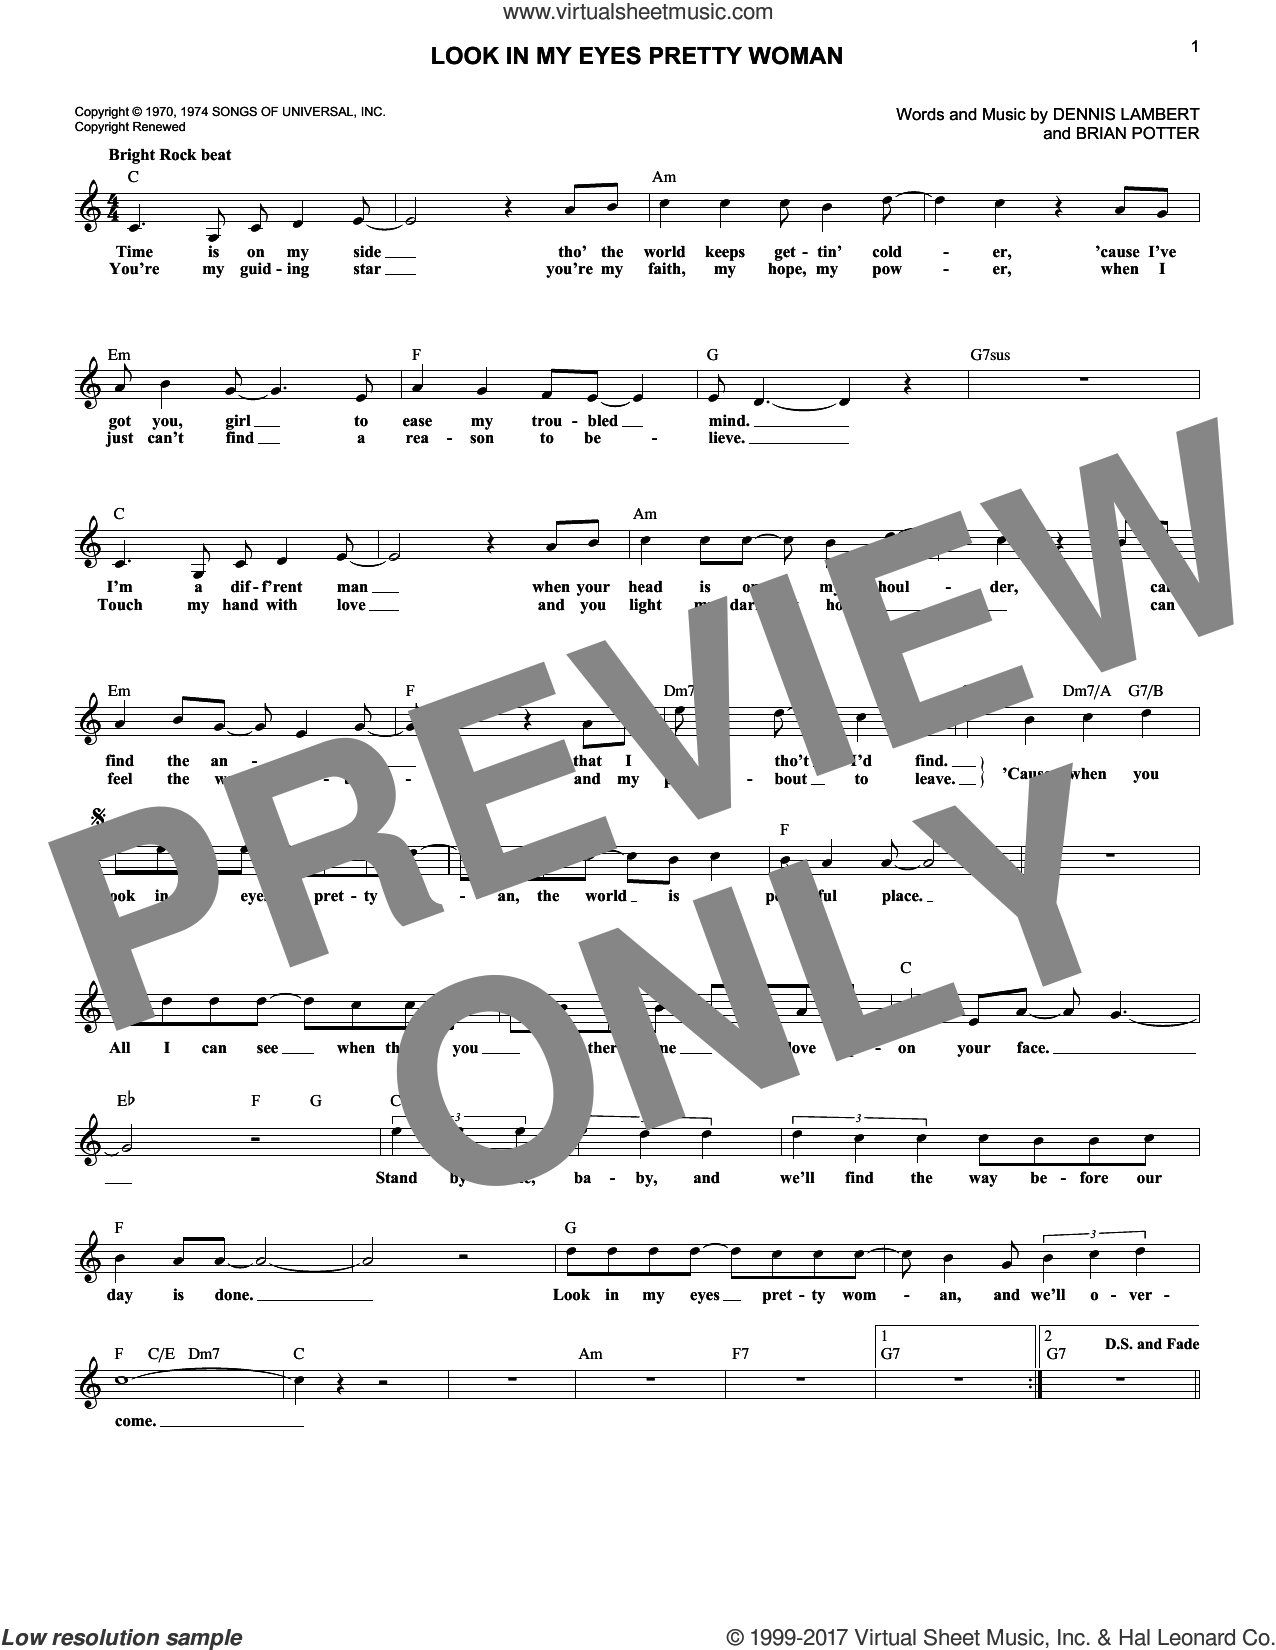 Look In My Eyes Pretty Woman sheet music for voice and other instruments (fake book) by Dawn. Score Image Preview.